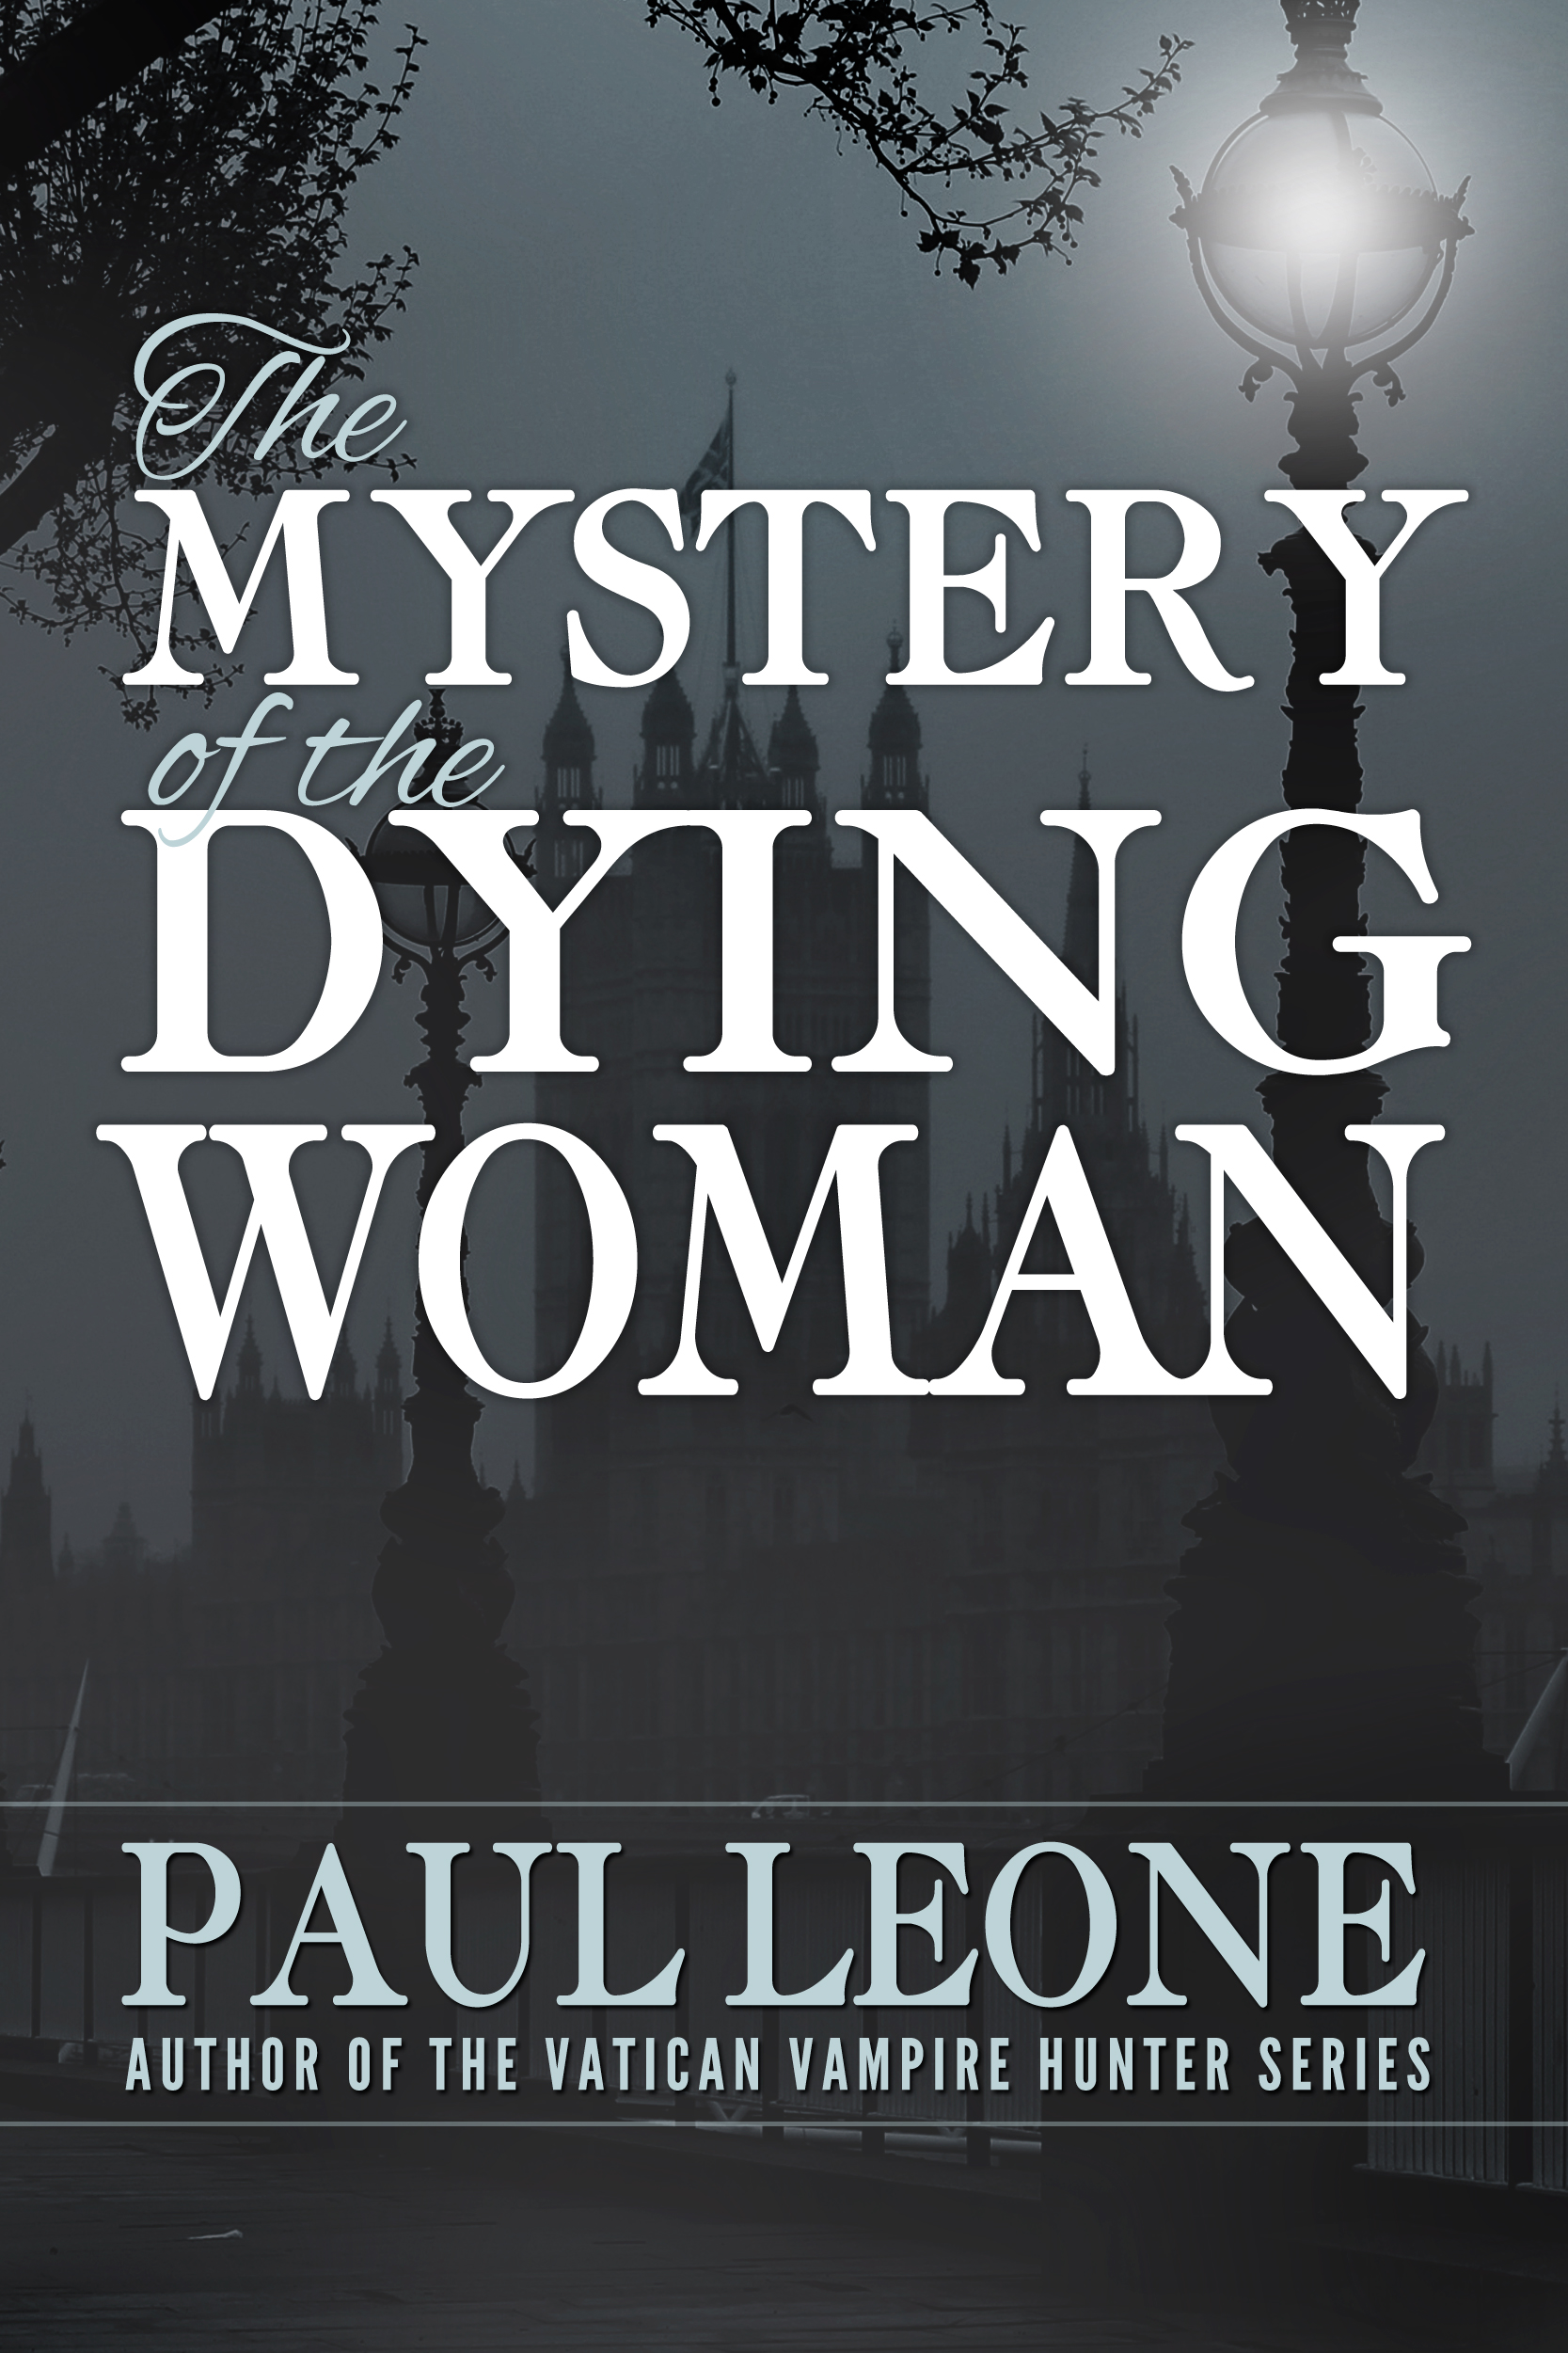 The Mystery of the Dying Woman